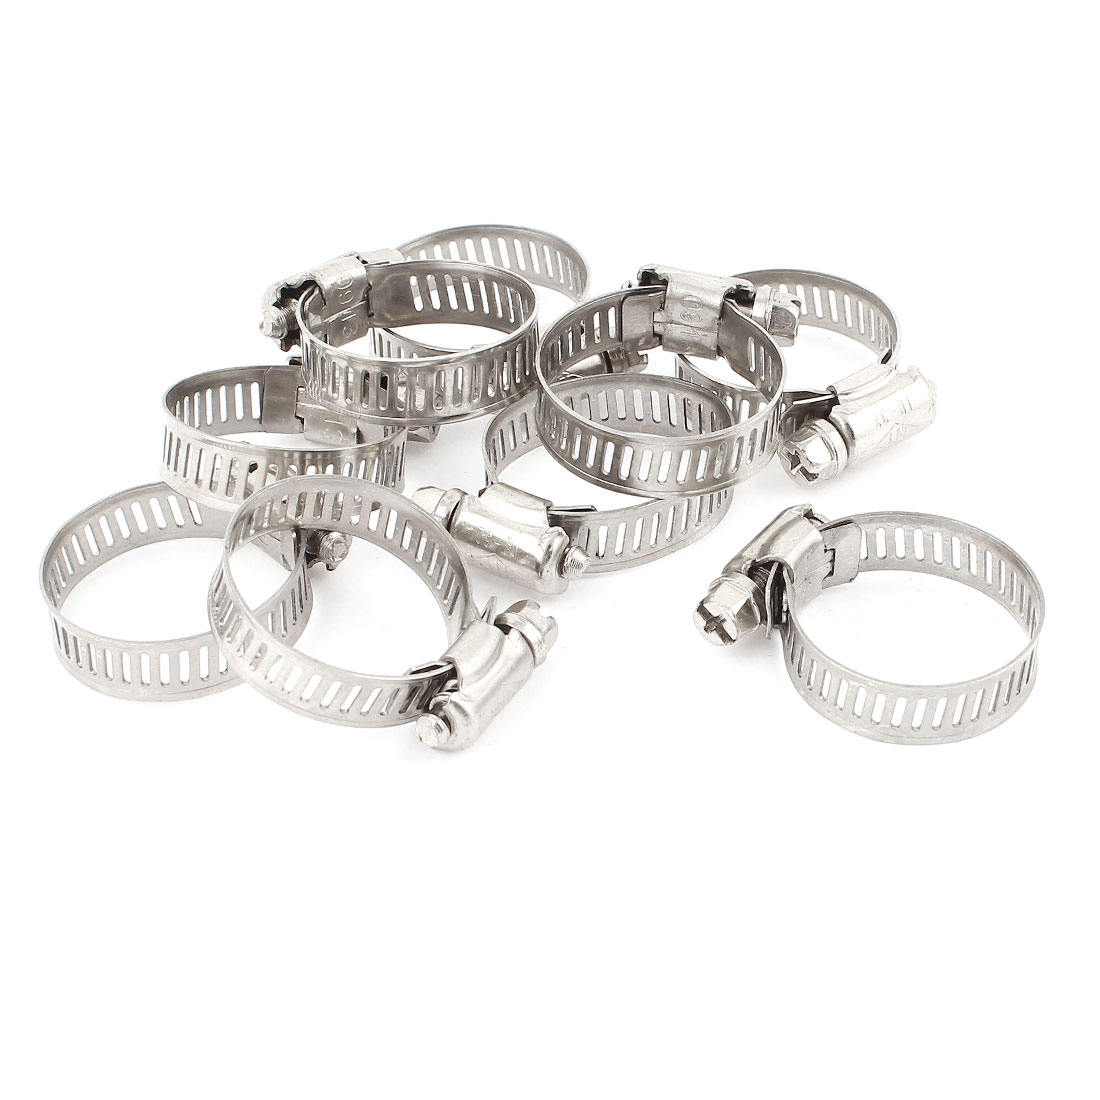 10 Pcs Metal Worm Drive Adjustable Pipe Hose Clamp Hoop 21-38mm